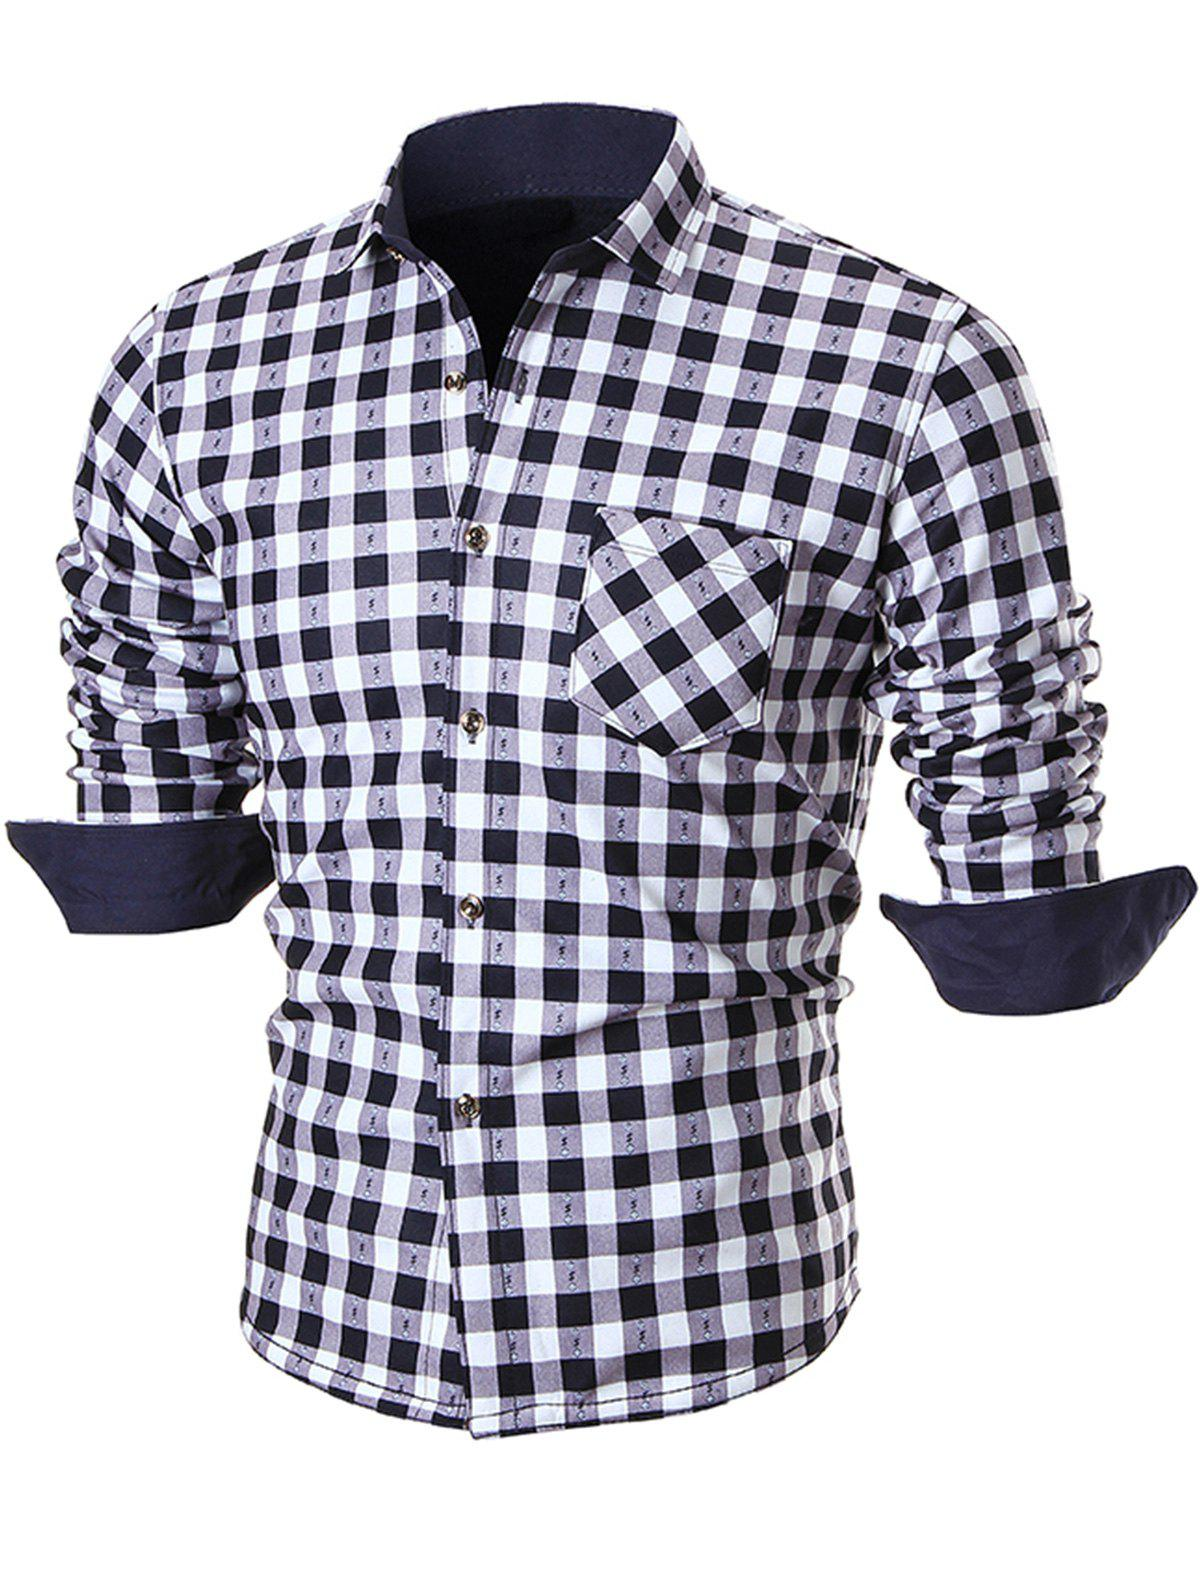 Warm Thicken Turn Down Collar Checkered Shirt - WHITE 2XL